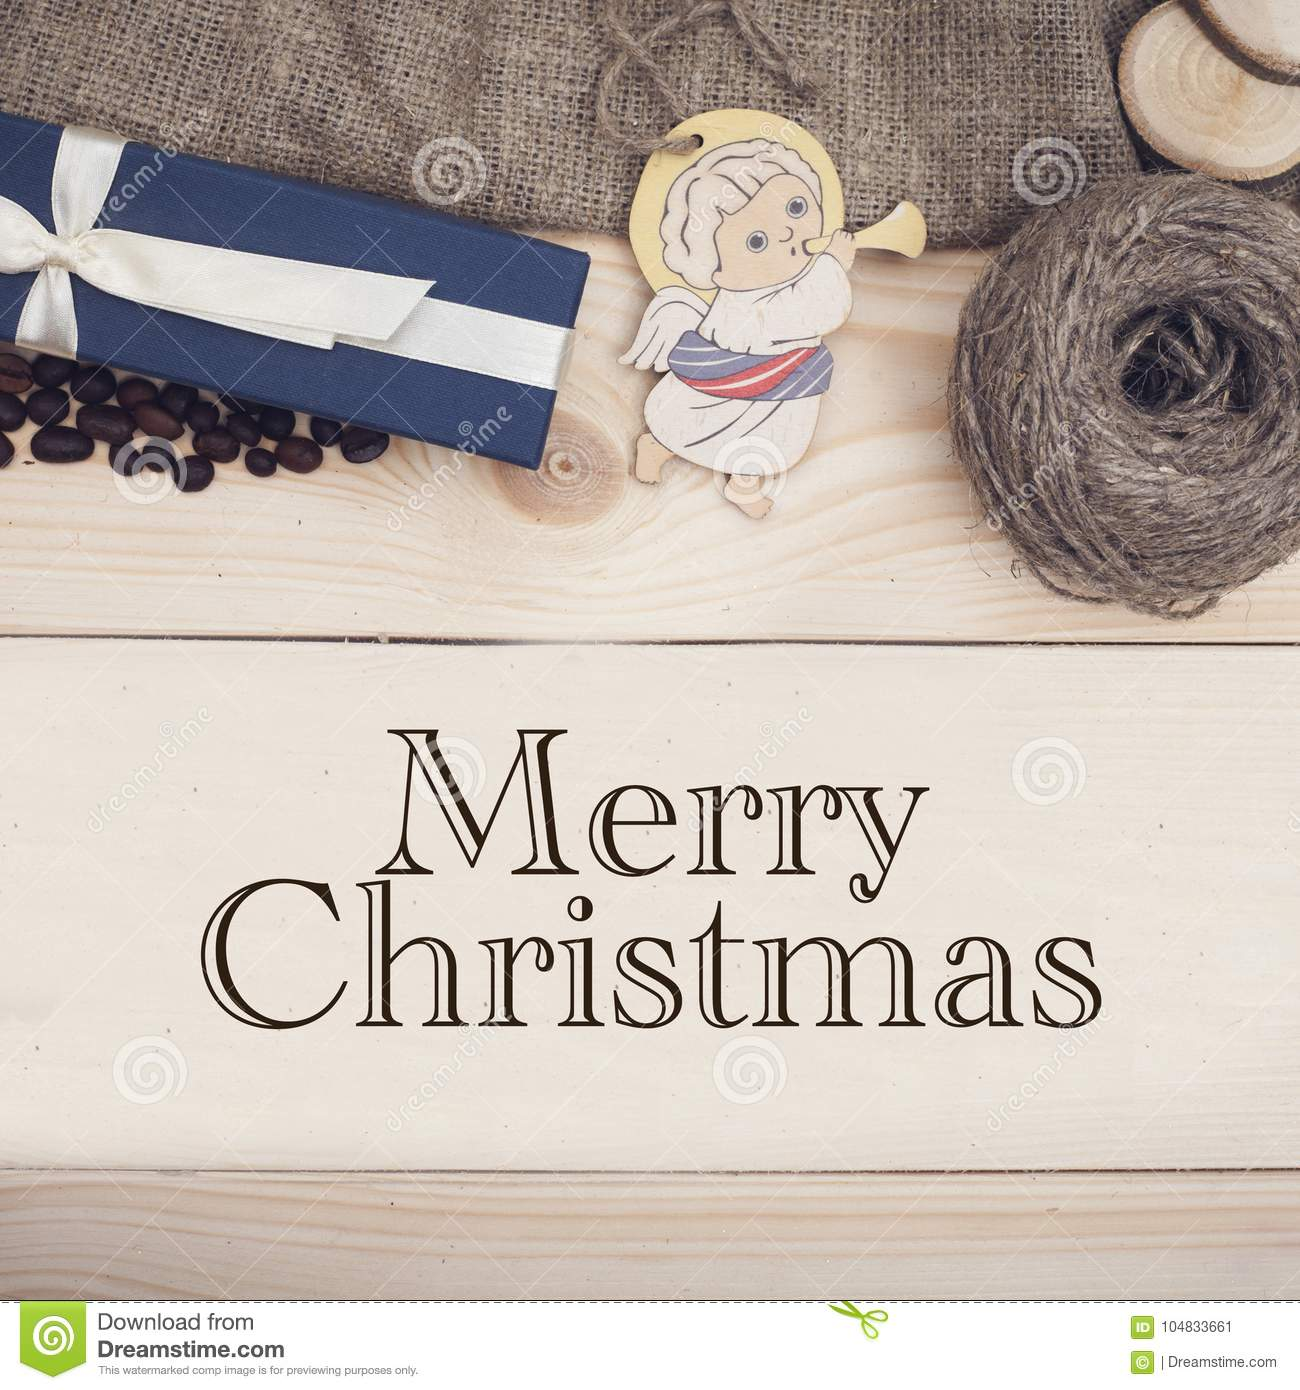 Merry Christmas inscription on a wooden background